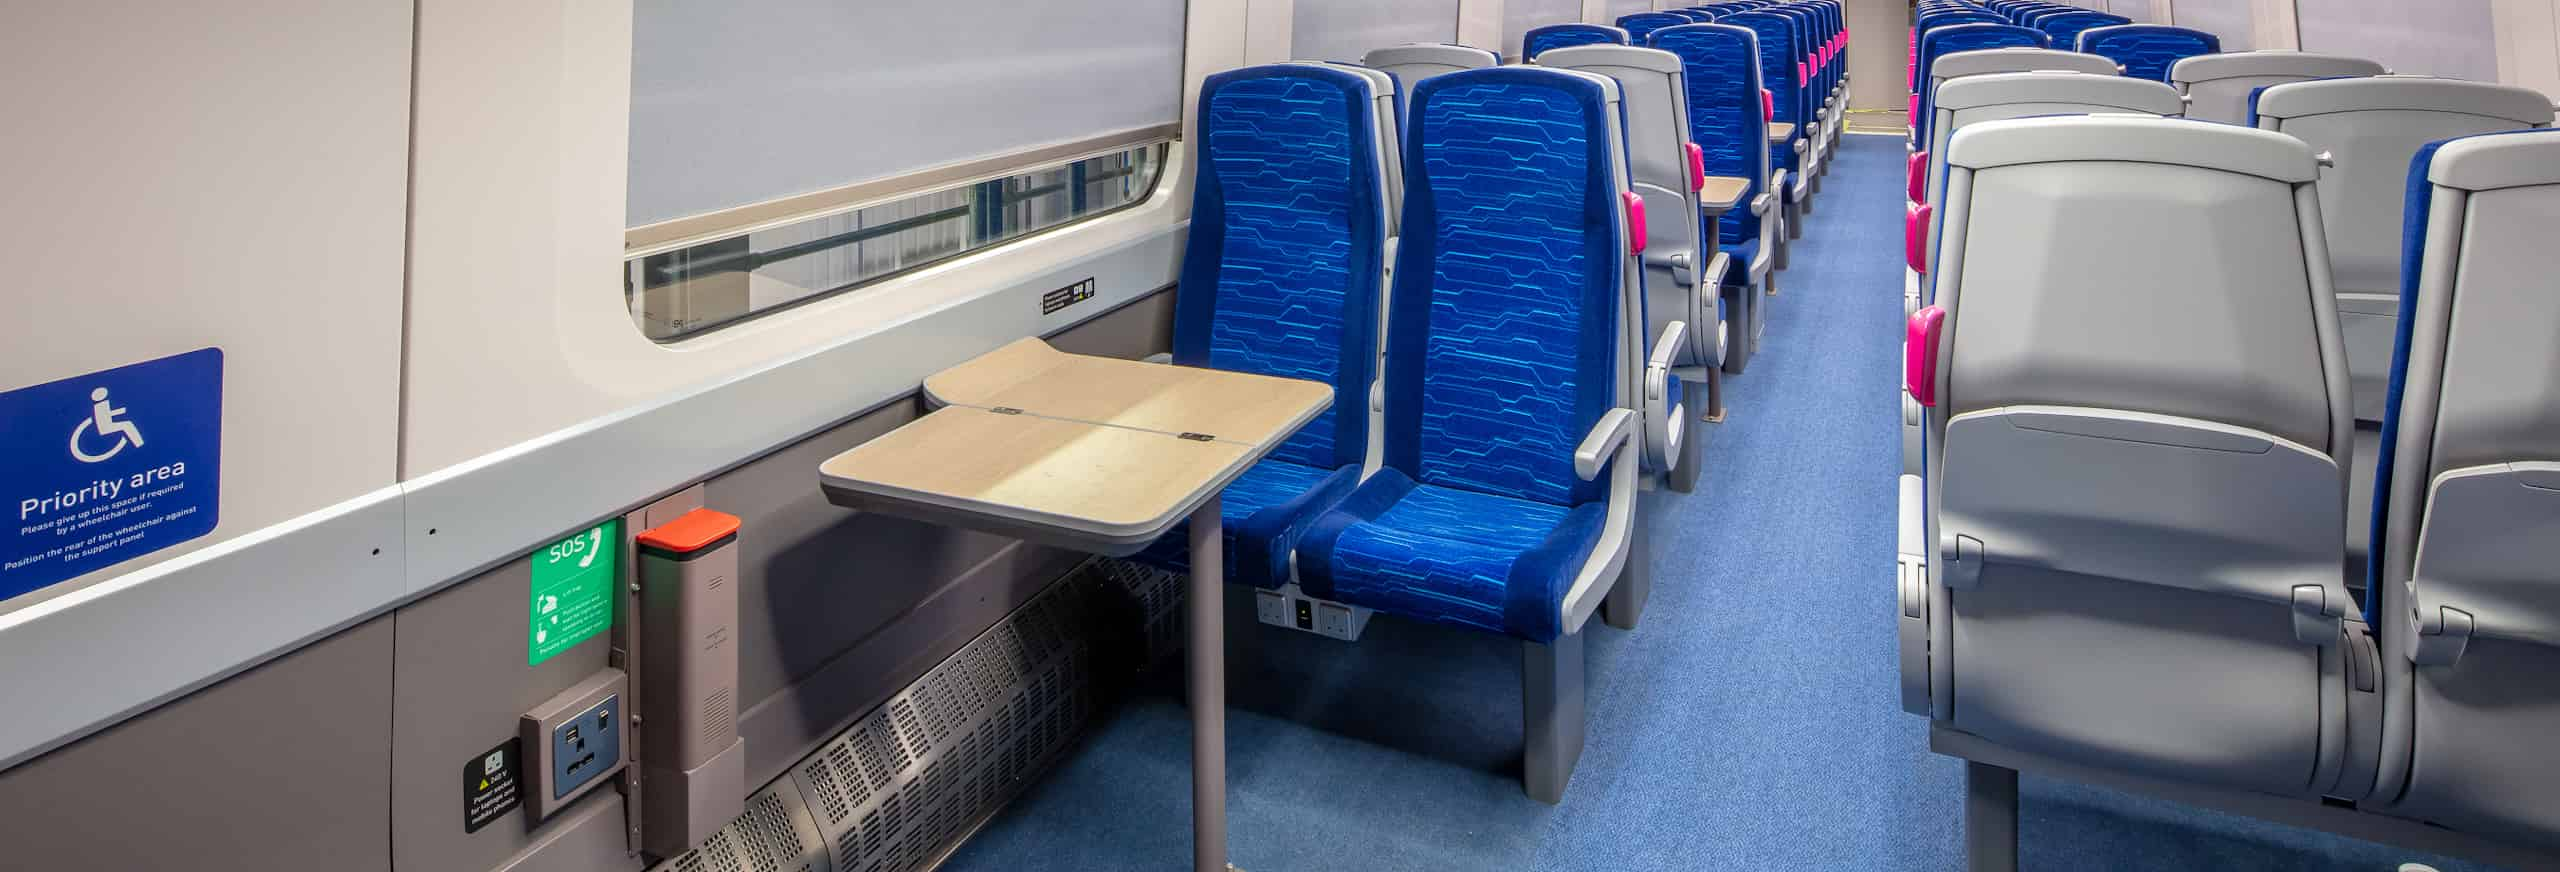 Hull Trains Paragon standard class accessible area